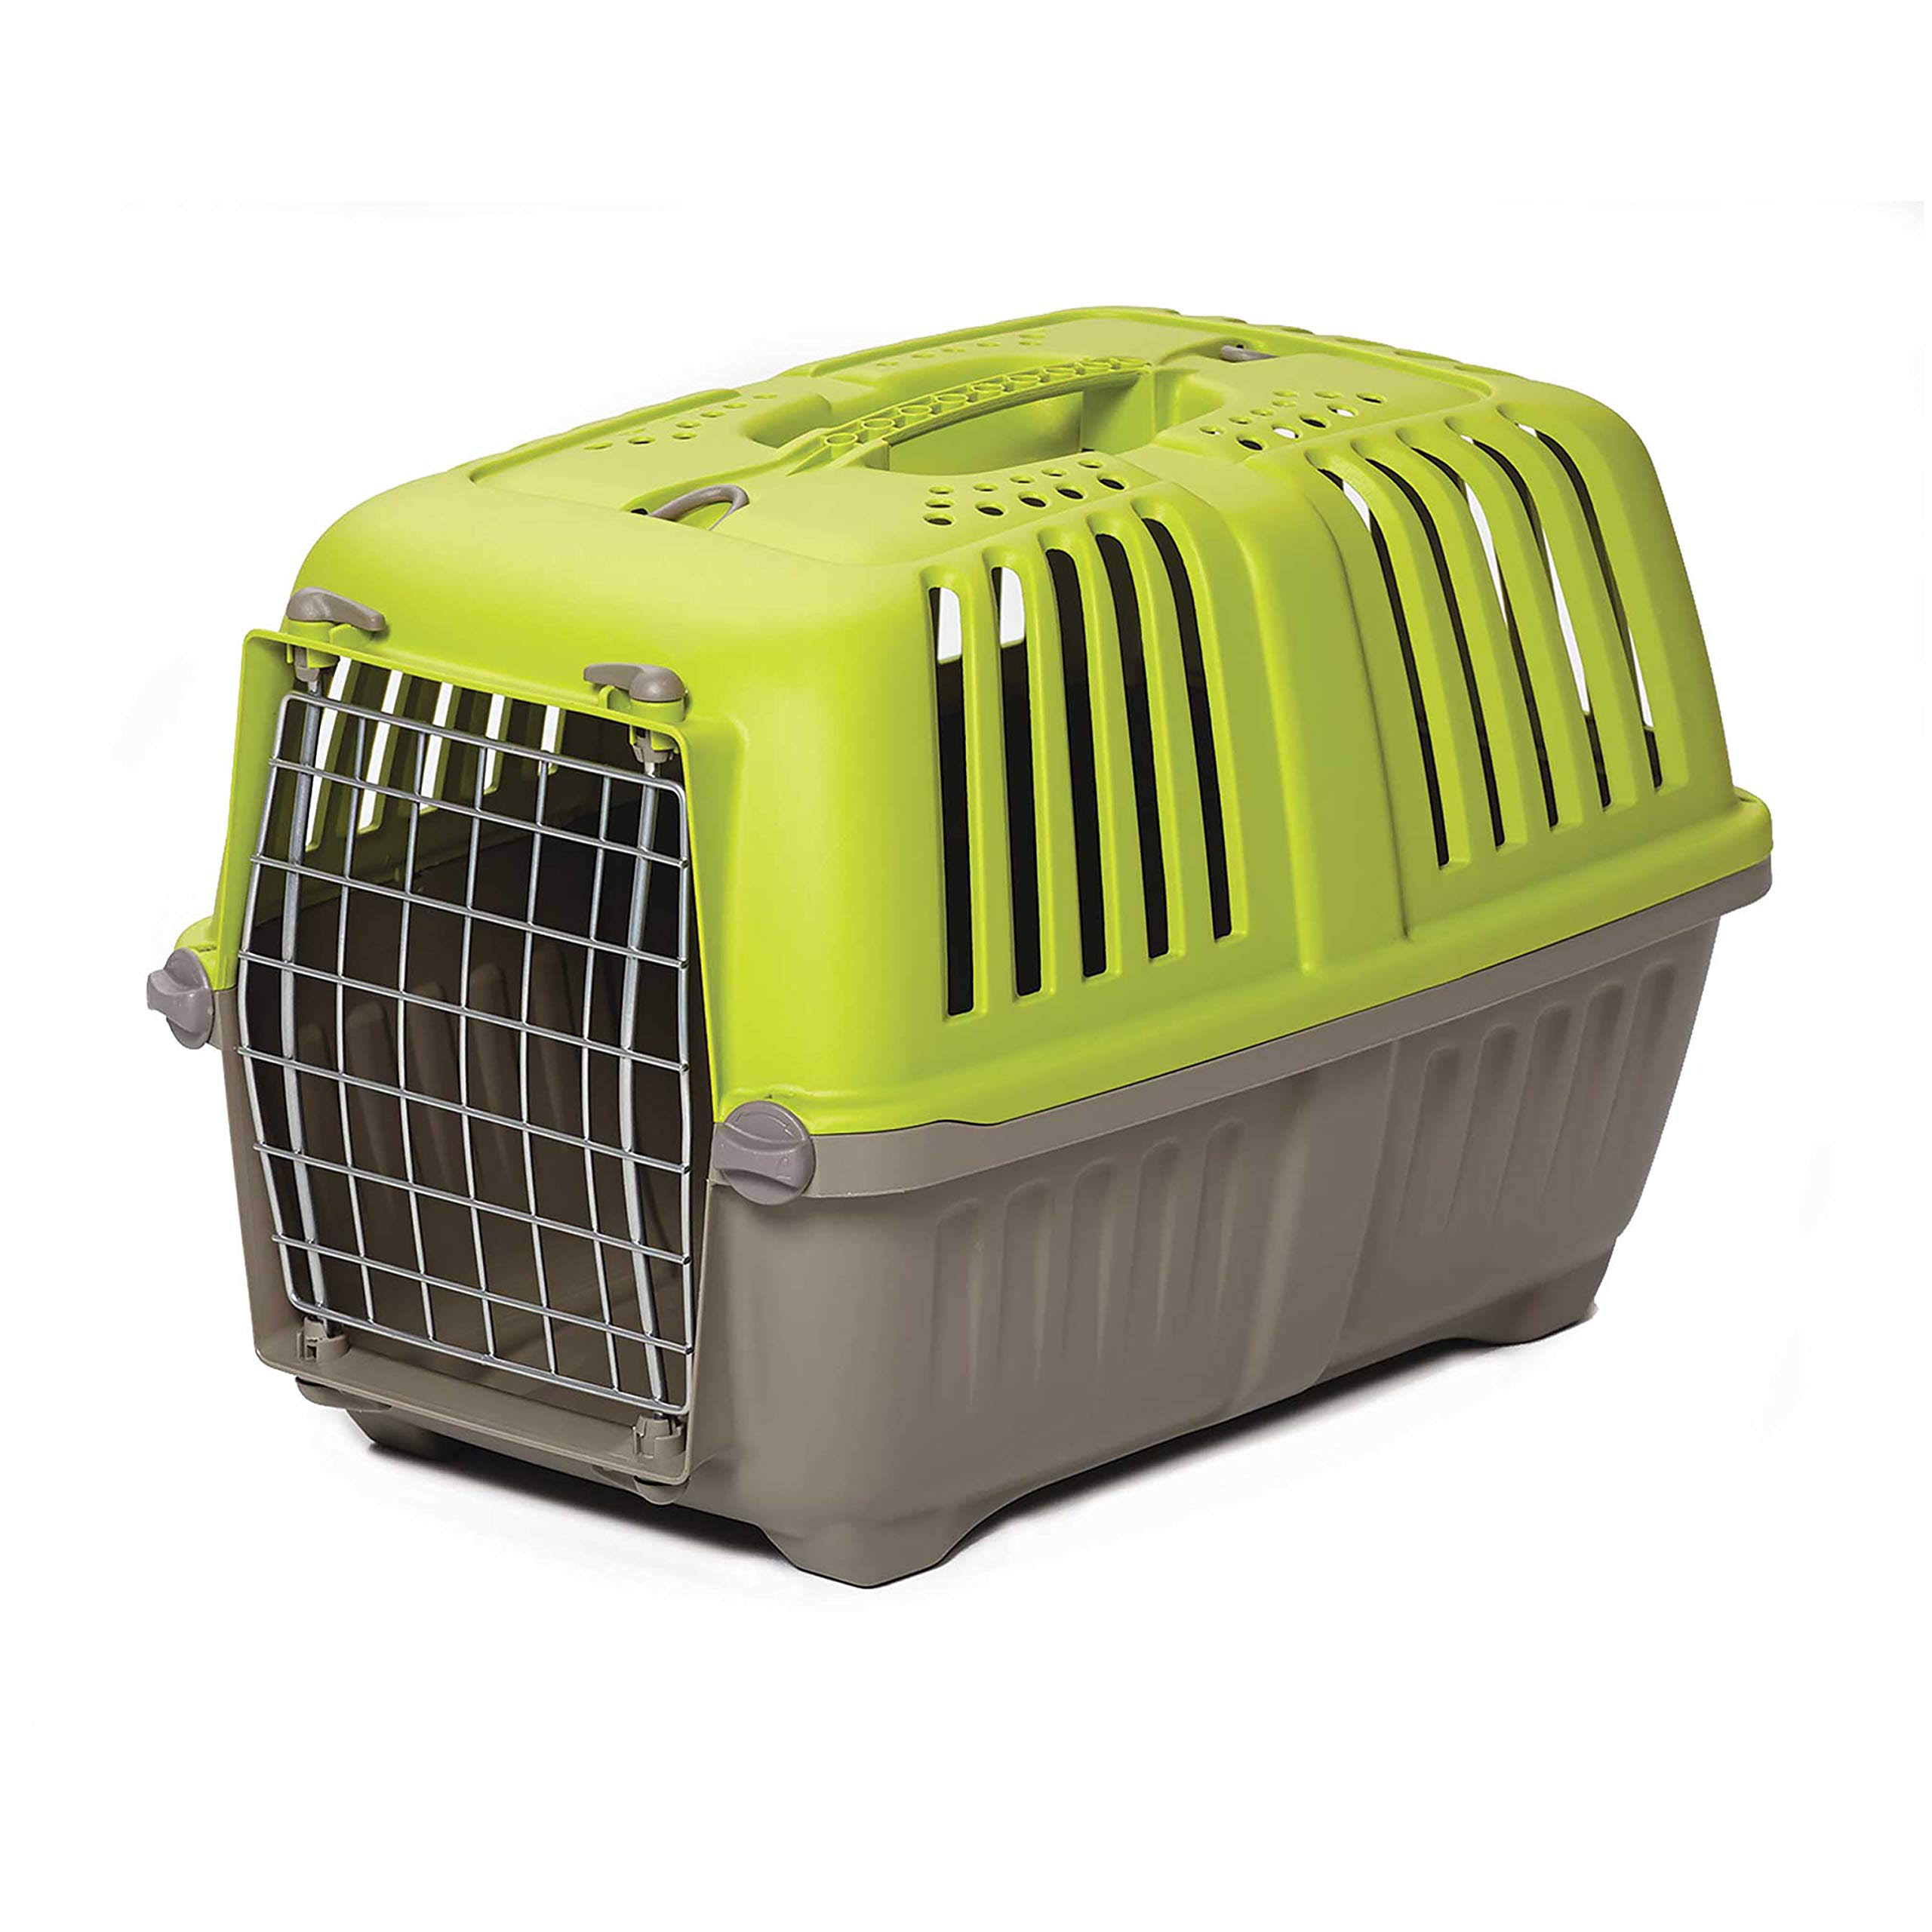 "Midwest Homes for Pets Spree Travel Carrier - 22"", Green"